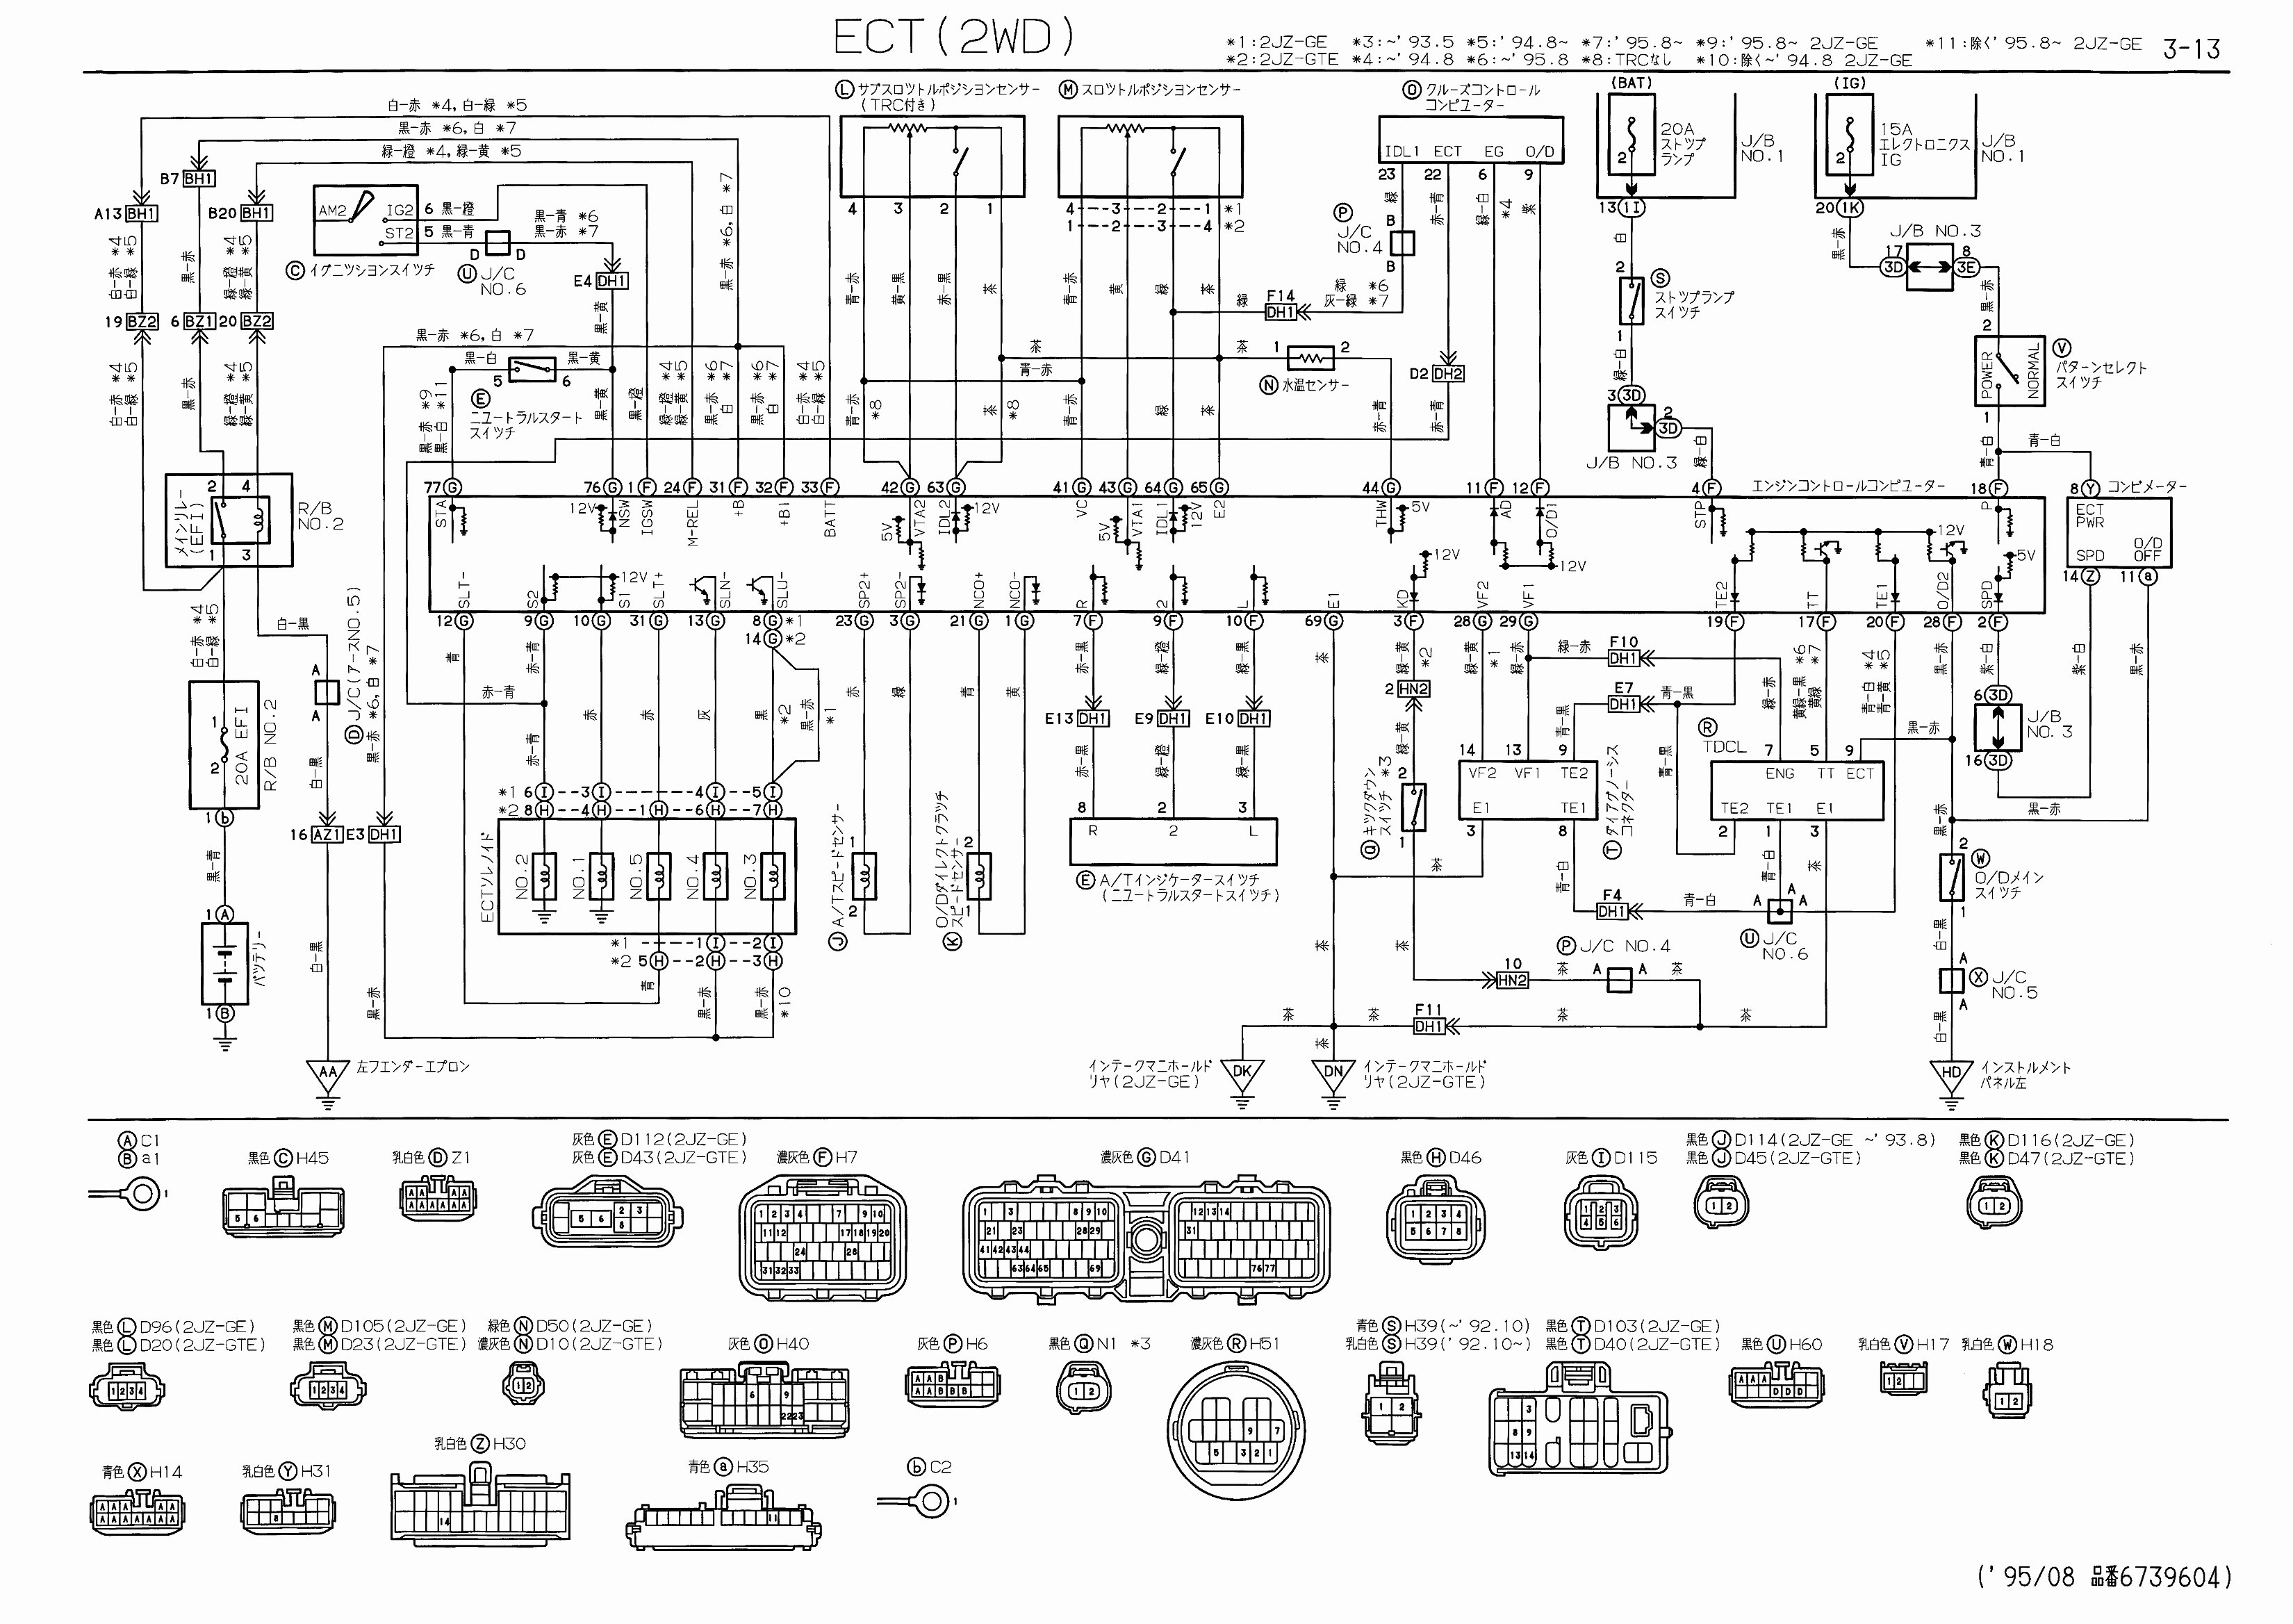 2004 Sprinter Wiring Diagram Guide And Troubleshooting Of 2006 Dodge 2500 Infiniti M30 Free For You U2022 Rh Atesgah Com Dual Battery